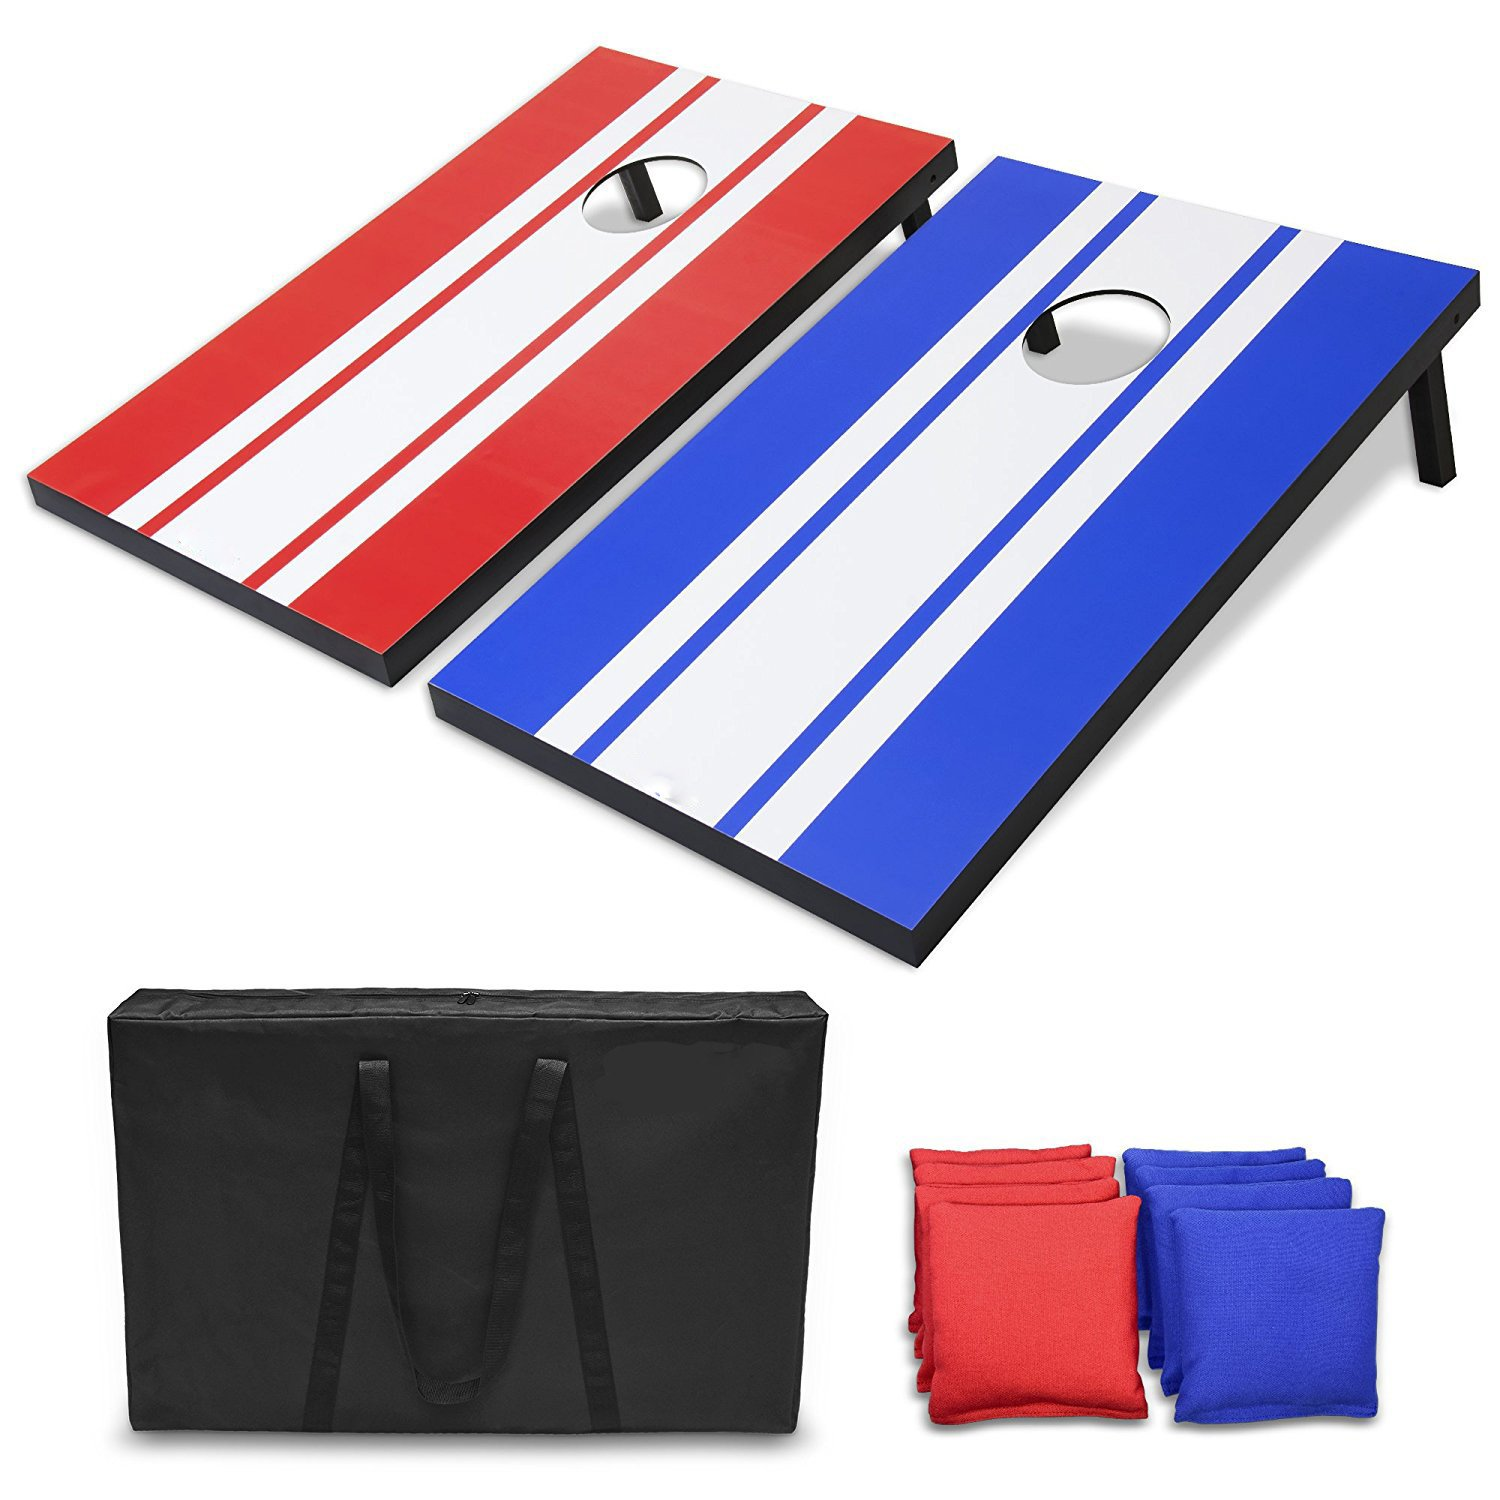 M.E.R.A. Classic Cornhole Set Includes 8 Bags, Water-Resistant 3' X 2' Boards Travel Carrying Case And Rules by M.E.R.A.